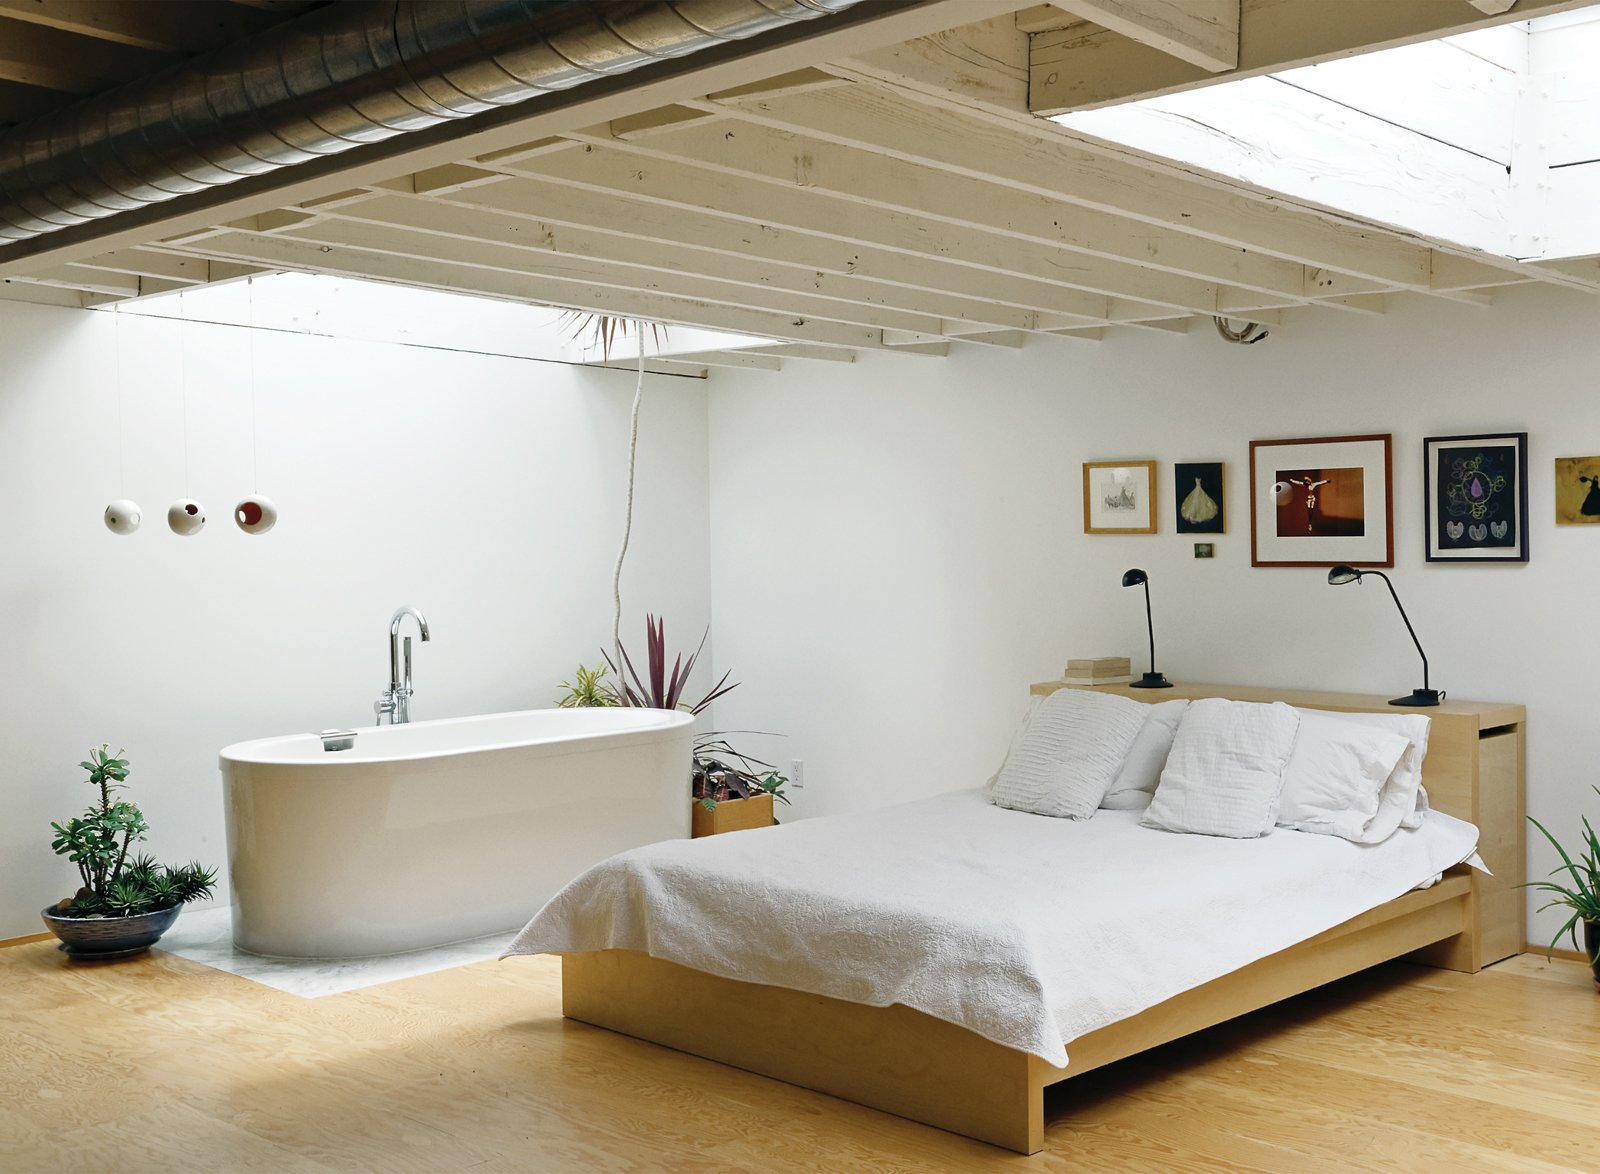 The bedroom mixes a bed and lamps from Ikea with a deep, luxurious bathtub (an inexpensive model from Neptune). The artworks include original prints by New York artist Franco Mondini-Ruiz.  Photo 9 of 9 in An Art Studio That Would Make Picasso Jealous